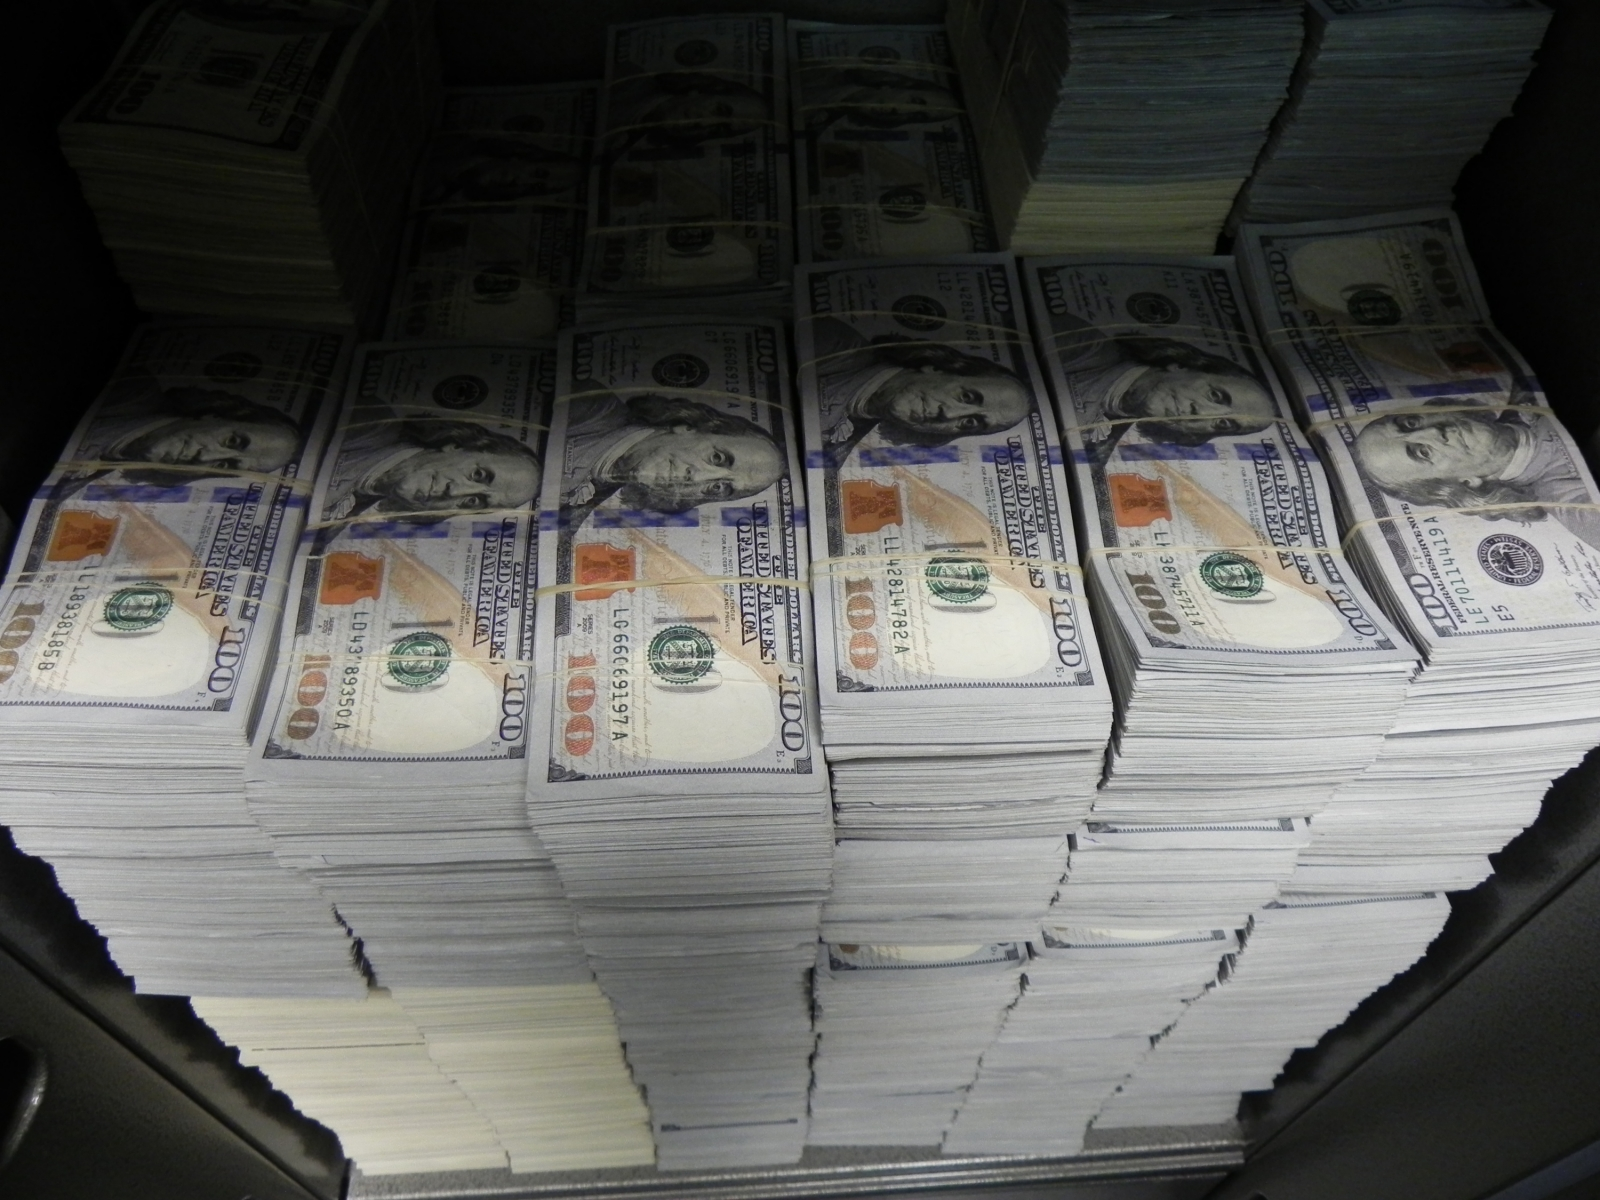 Woman Arrested With 70k Of Drug Money In Her Stomach